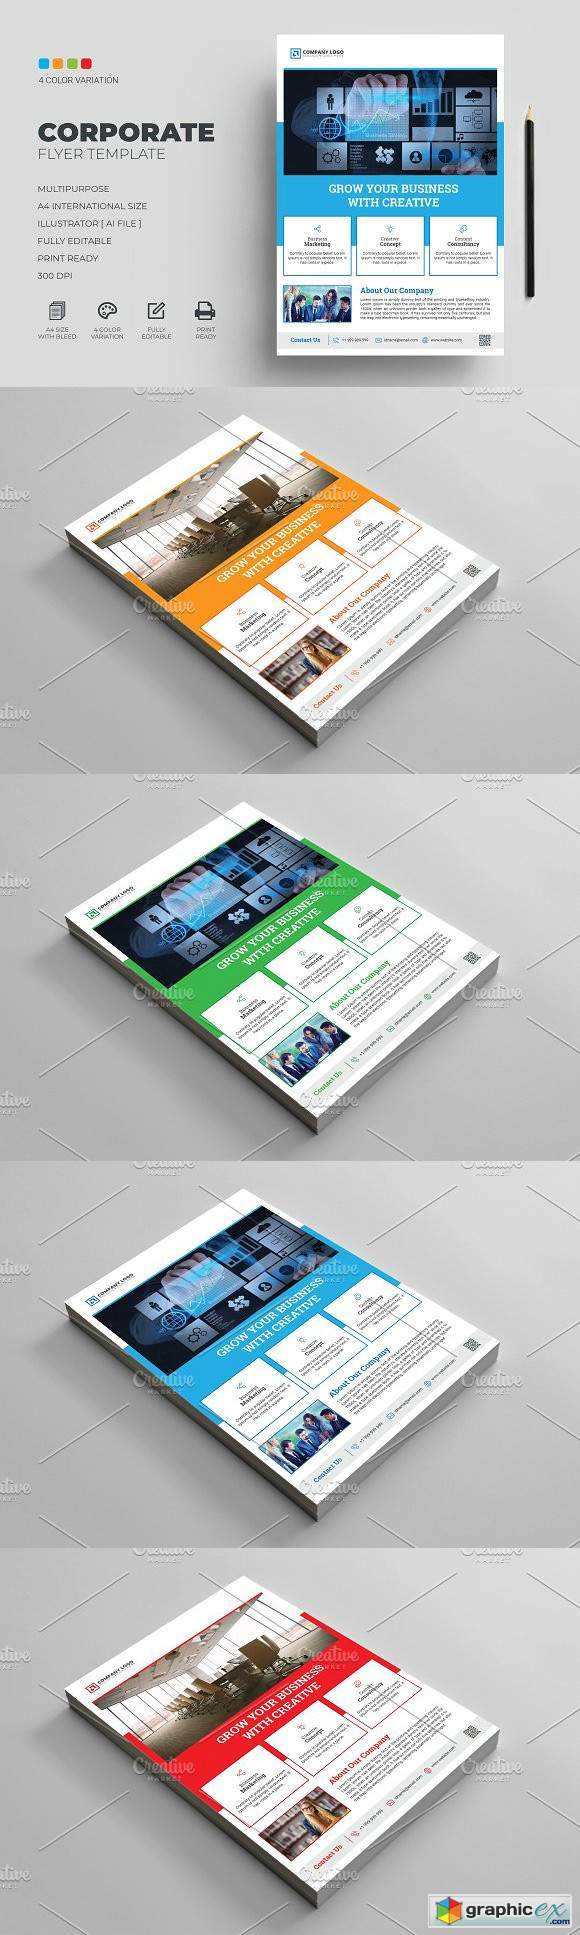 Corporate Flyer Template 3075822